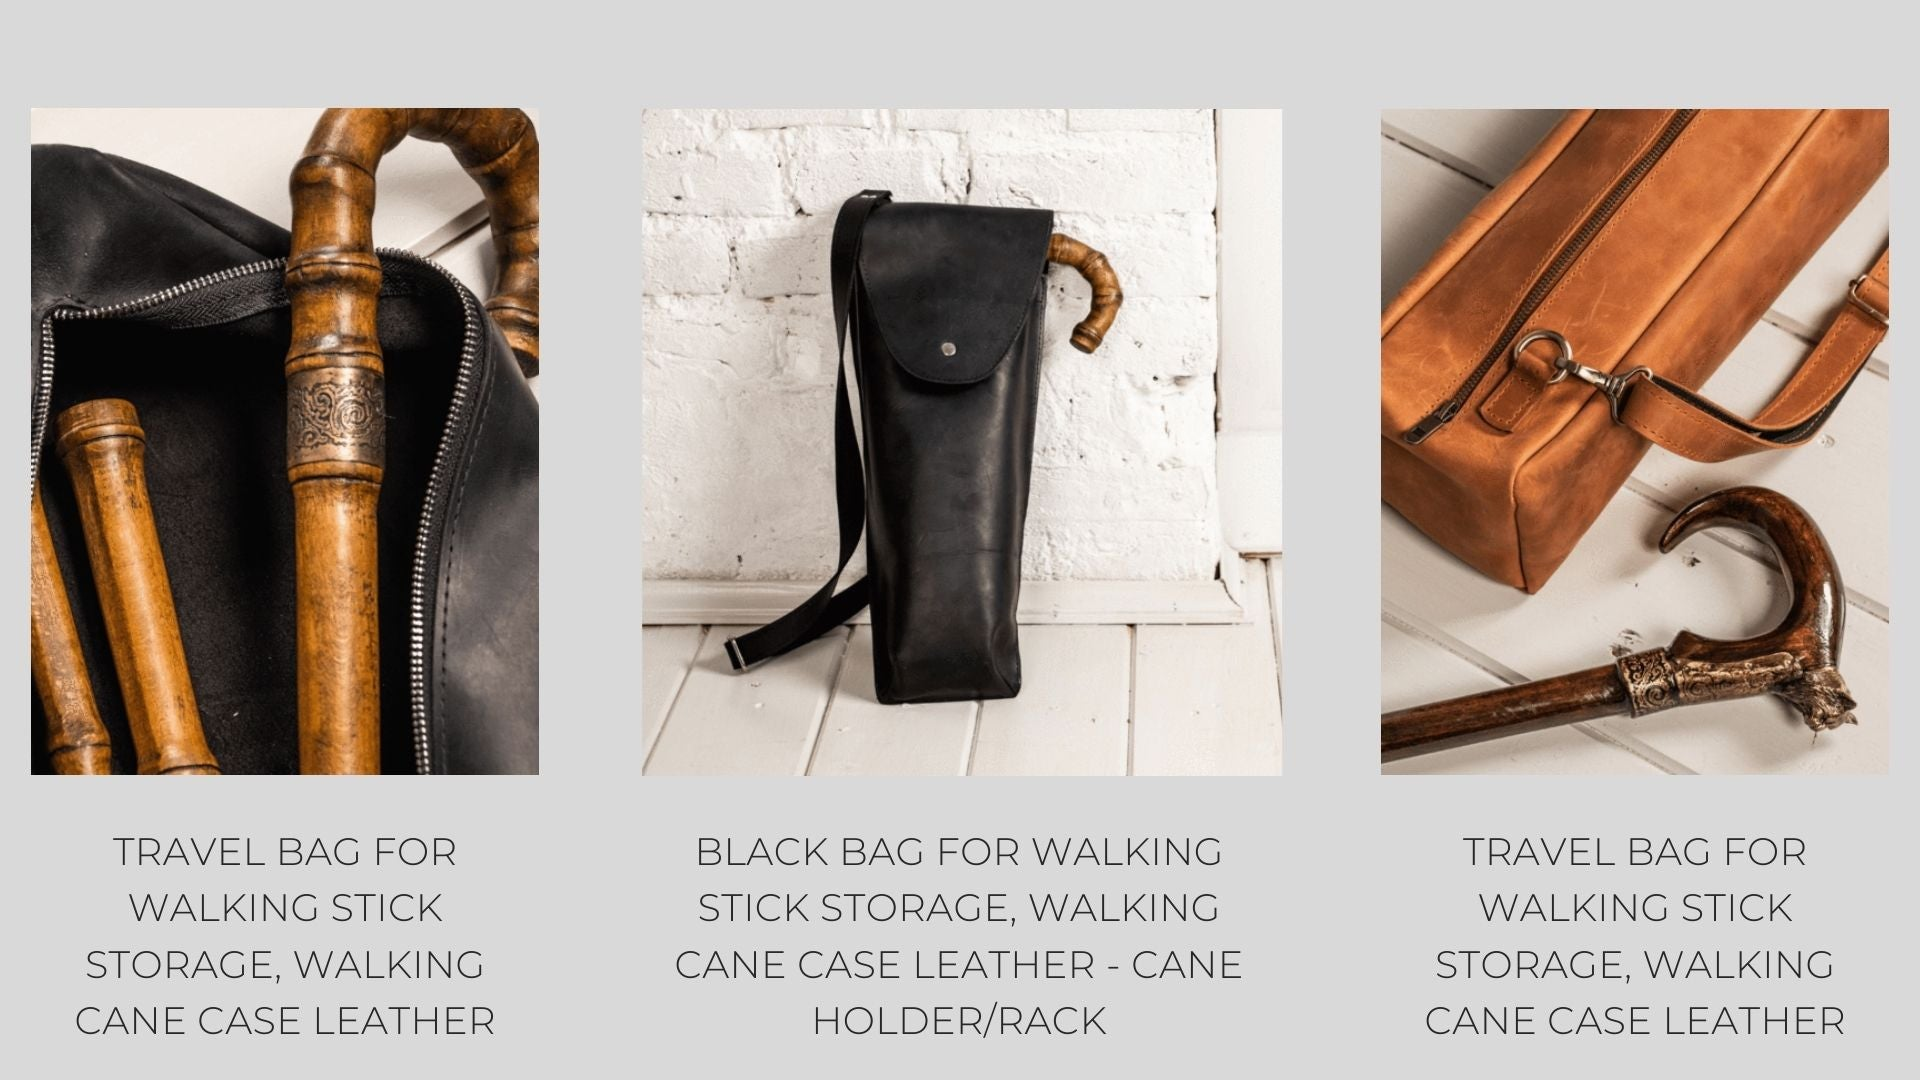 Walking cane accessories leathe bags